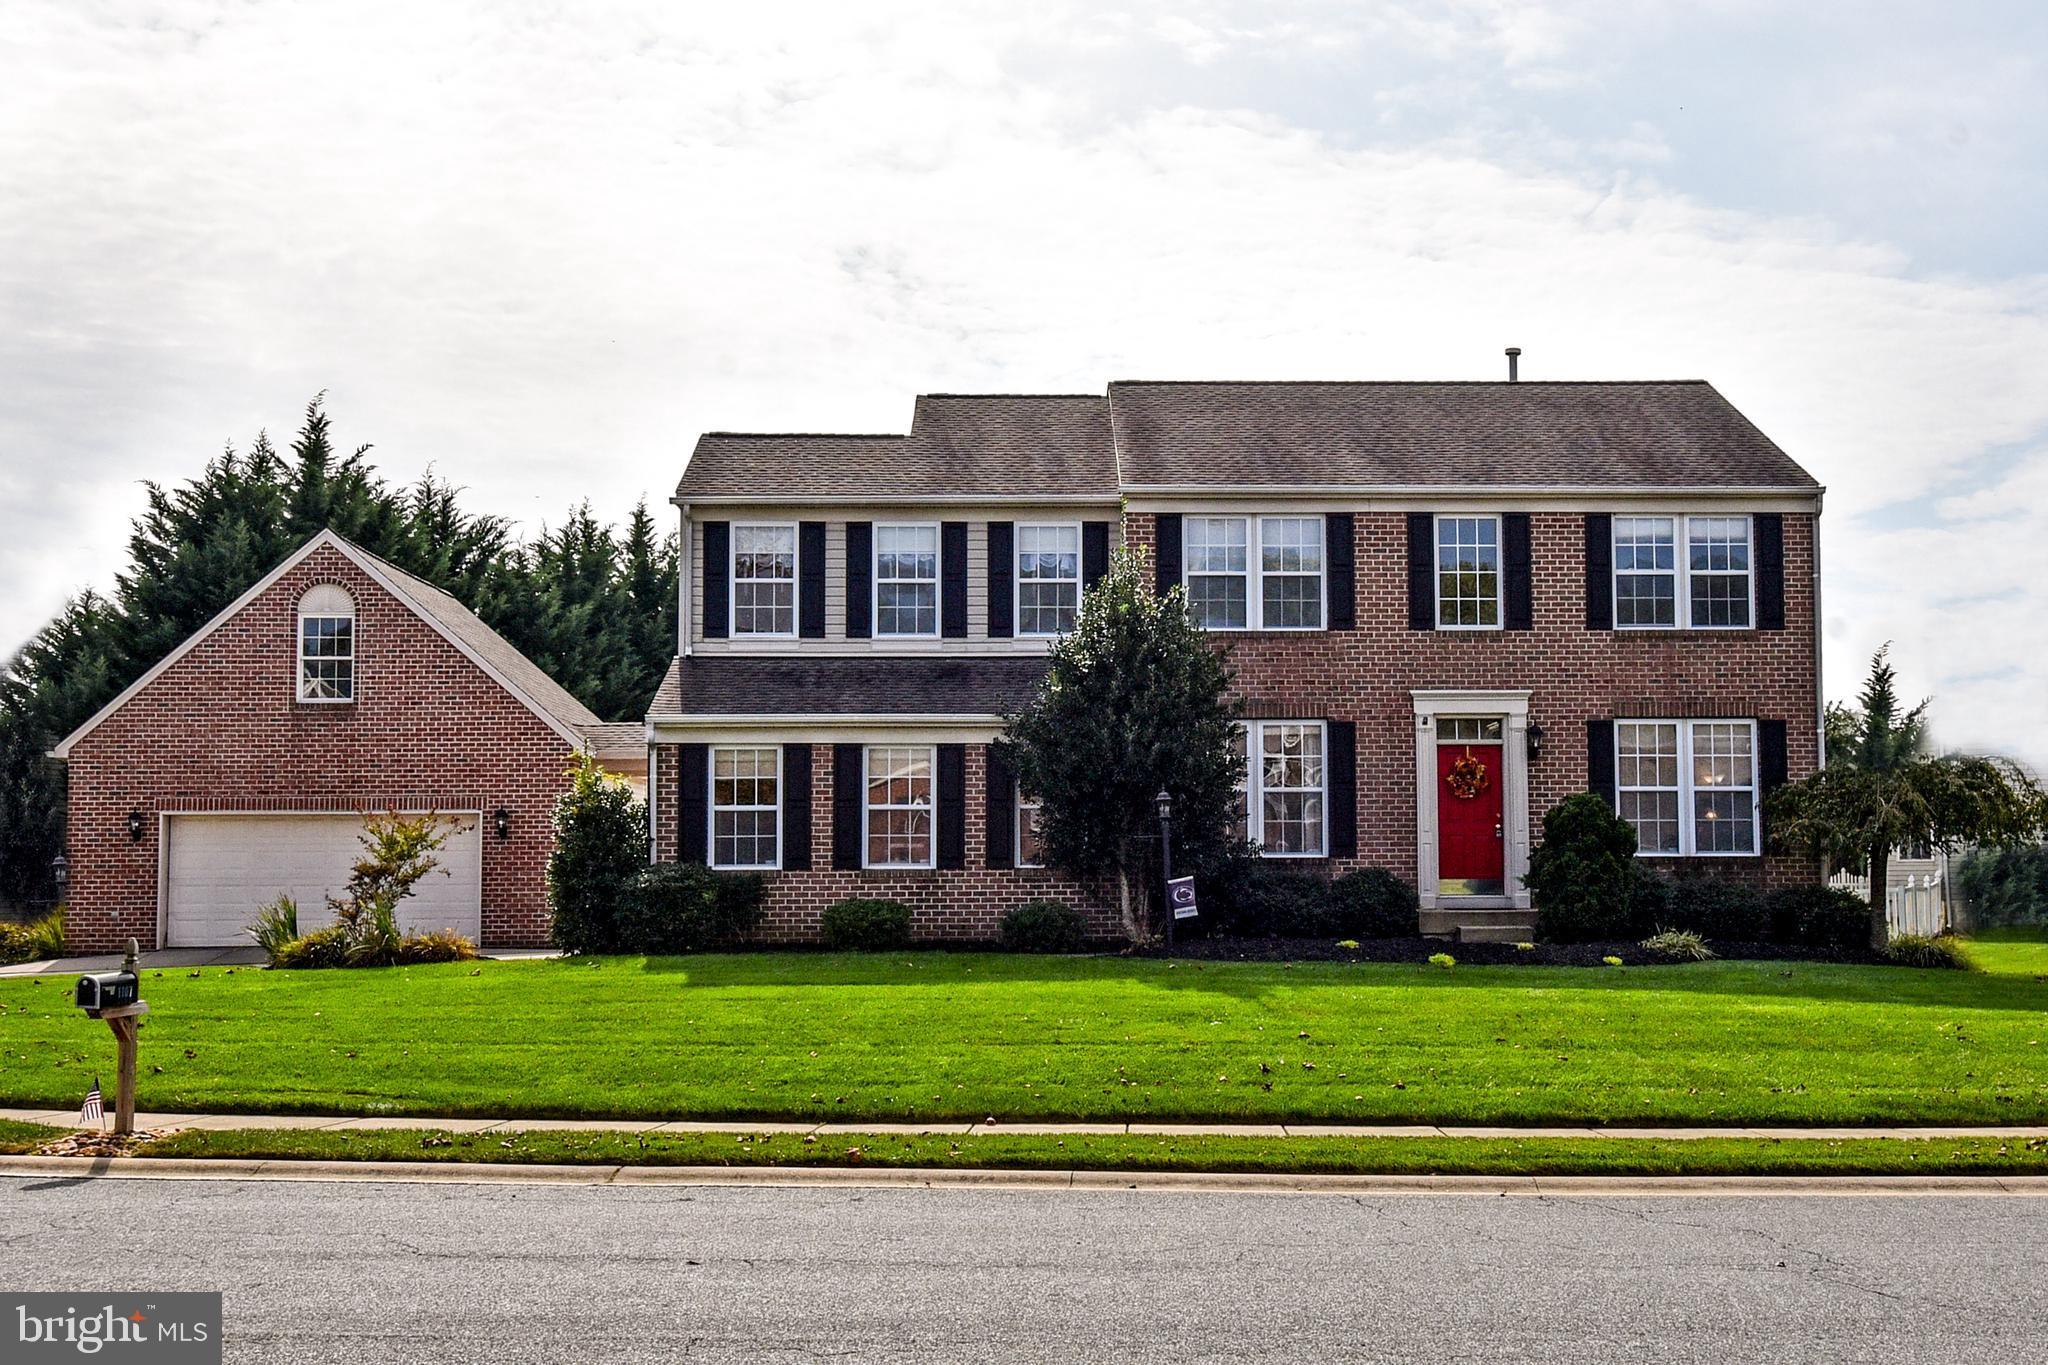 MUST SEE! METICULOUSLY MAINTAINED 5 BEDROOM 3.5 BATH BRICK COLONIAL IN SOUGHT AFTER STONE RIDGE COMM